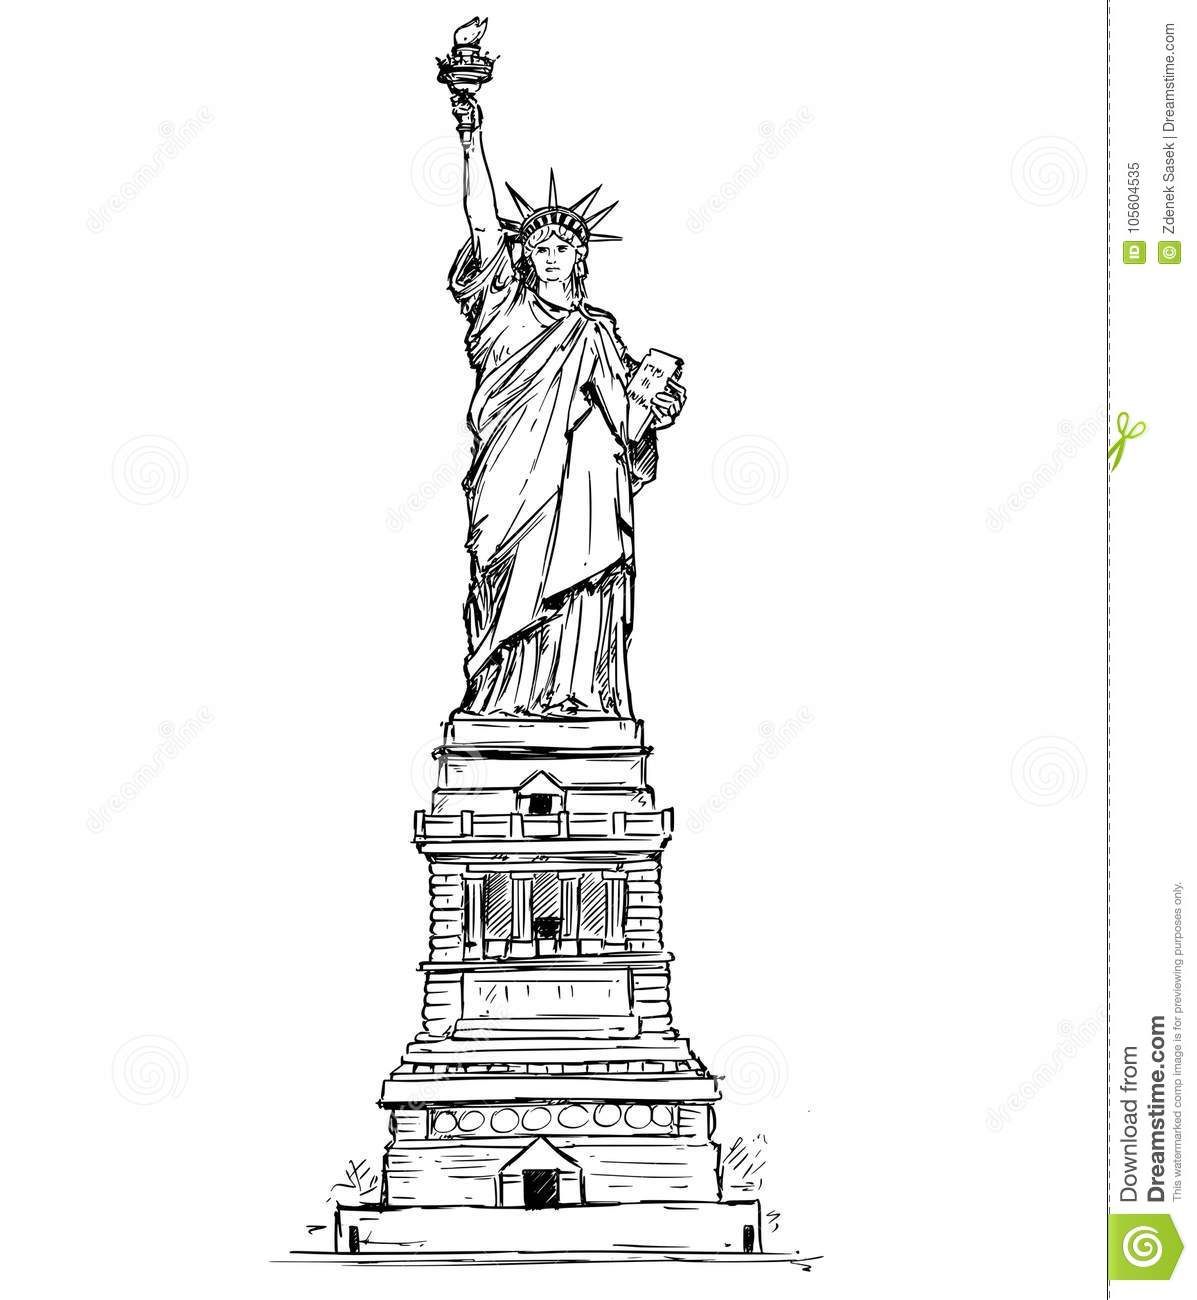 Statue Of Liberty Hand Drawing Stock Vector Illustration Of Liberty Independence 105604535